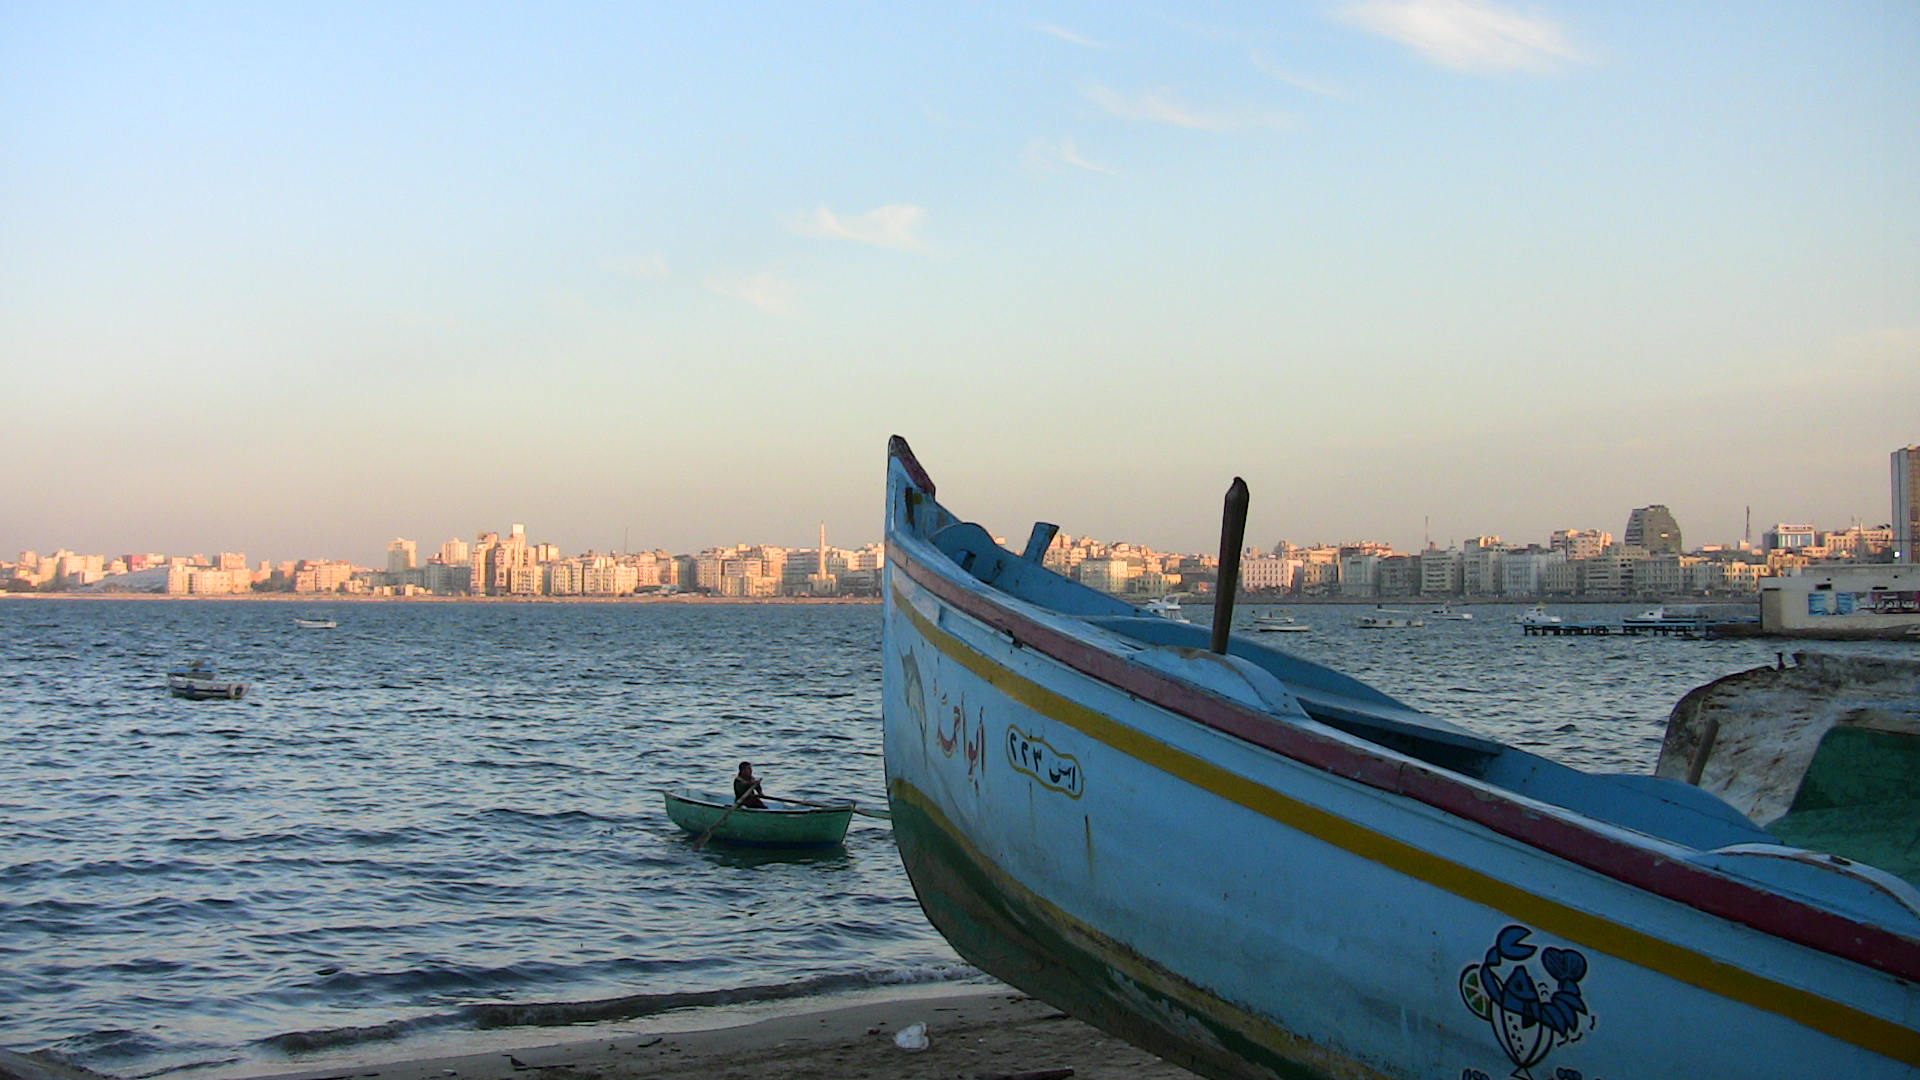 Alexandria, covering about 32km of the Mediterranean sea coast, is a major tourist destination, known as